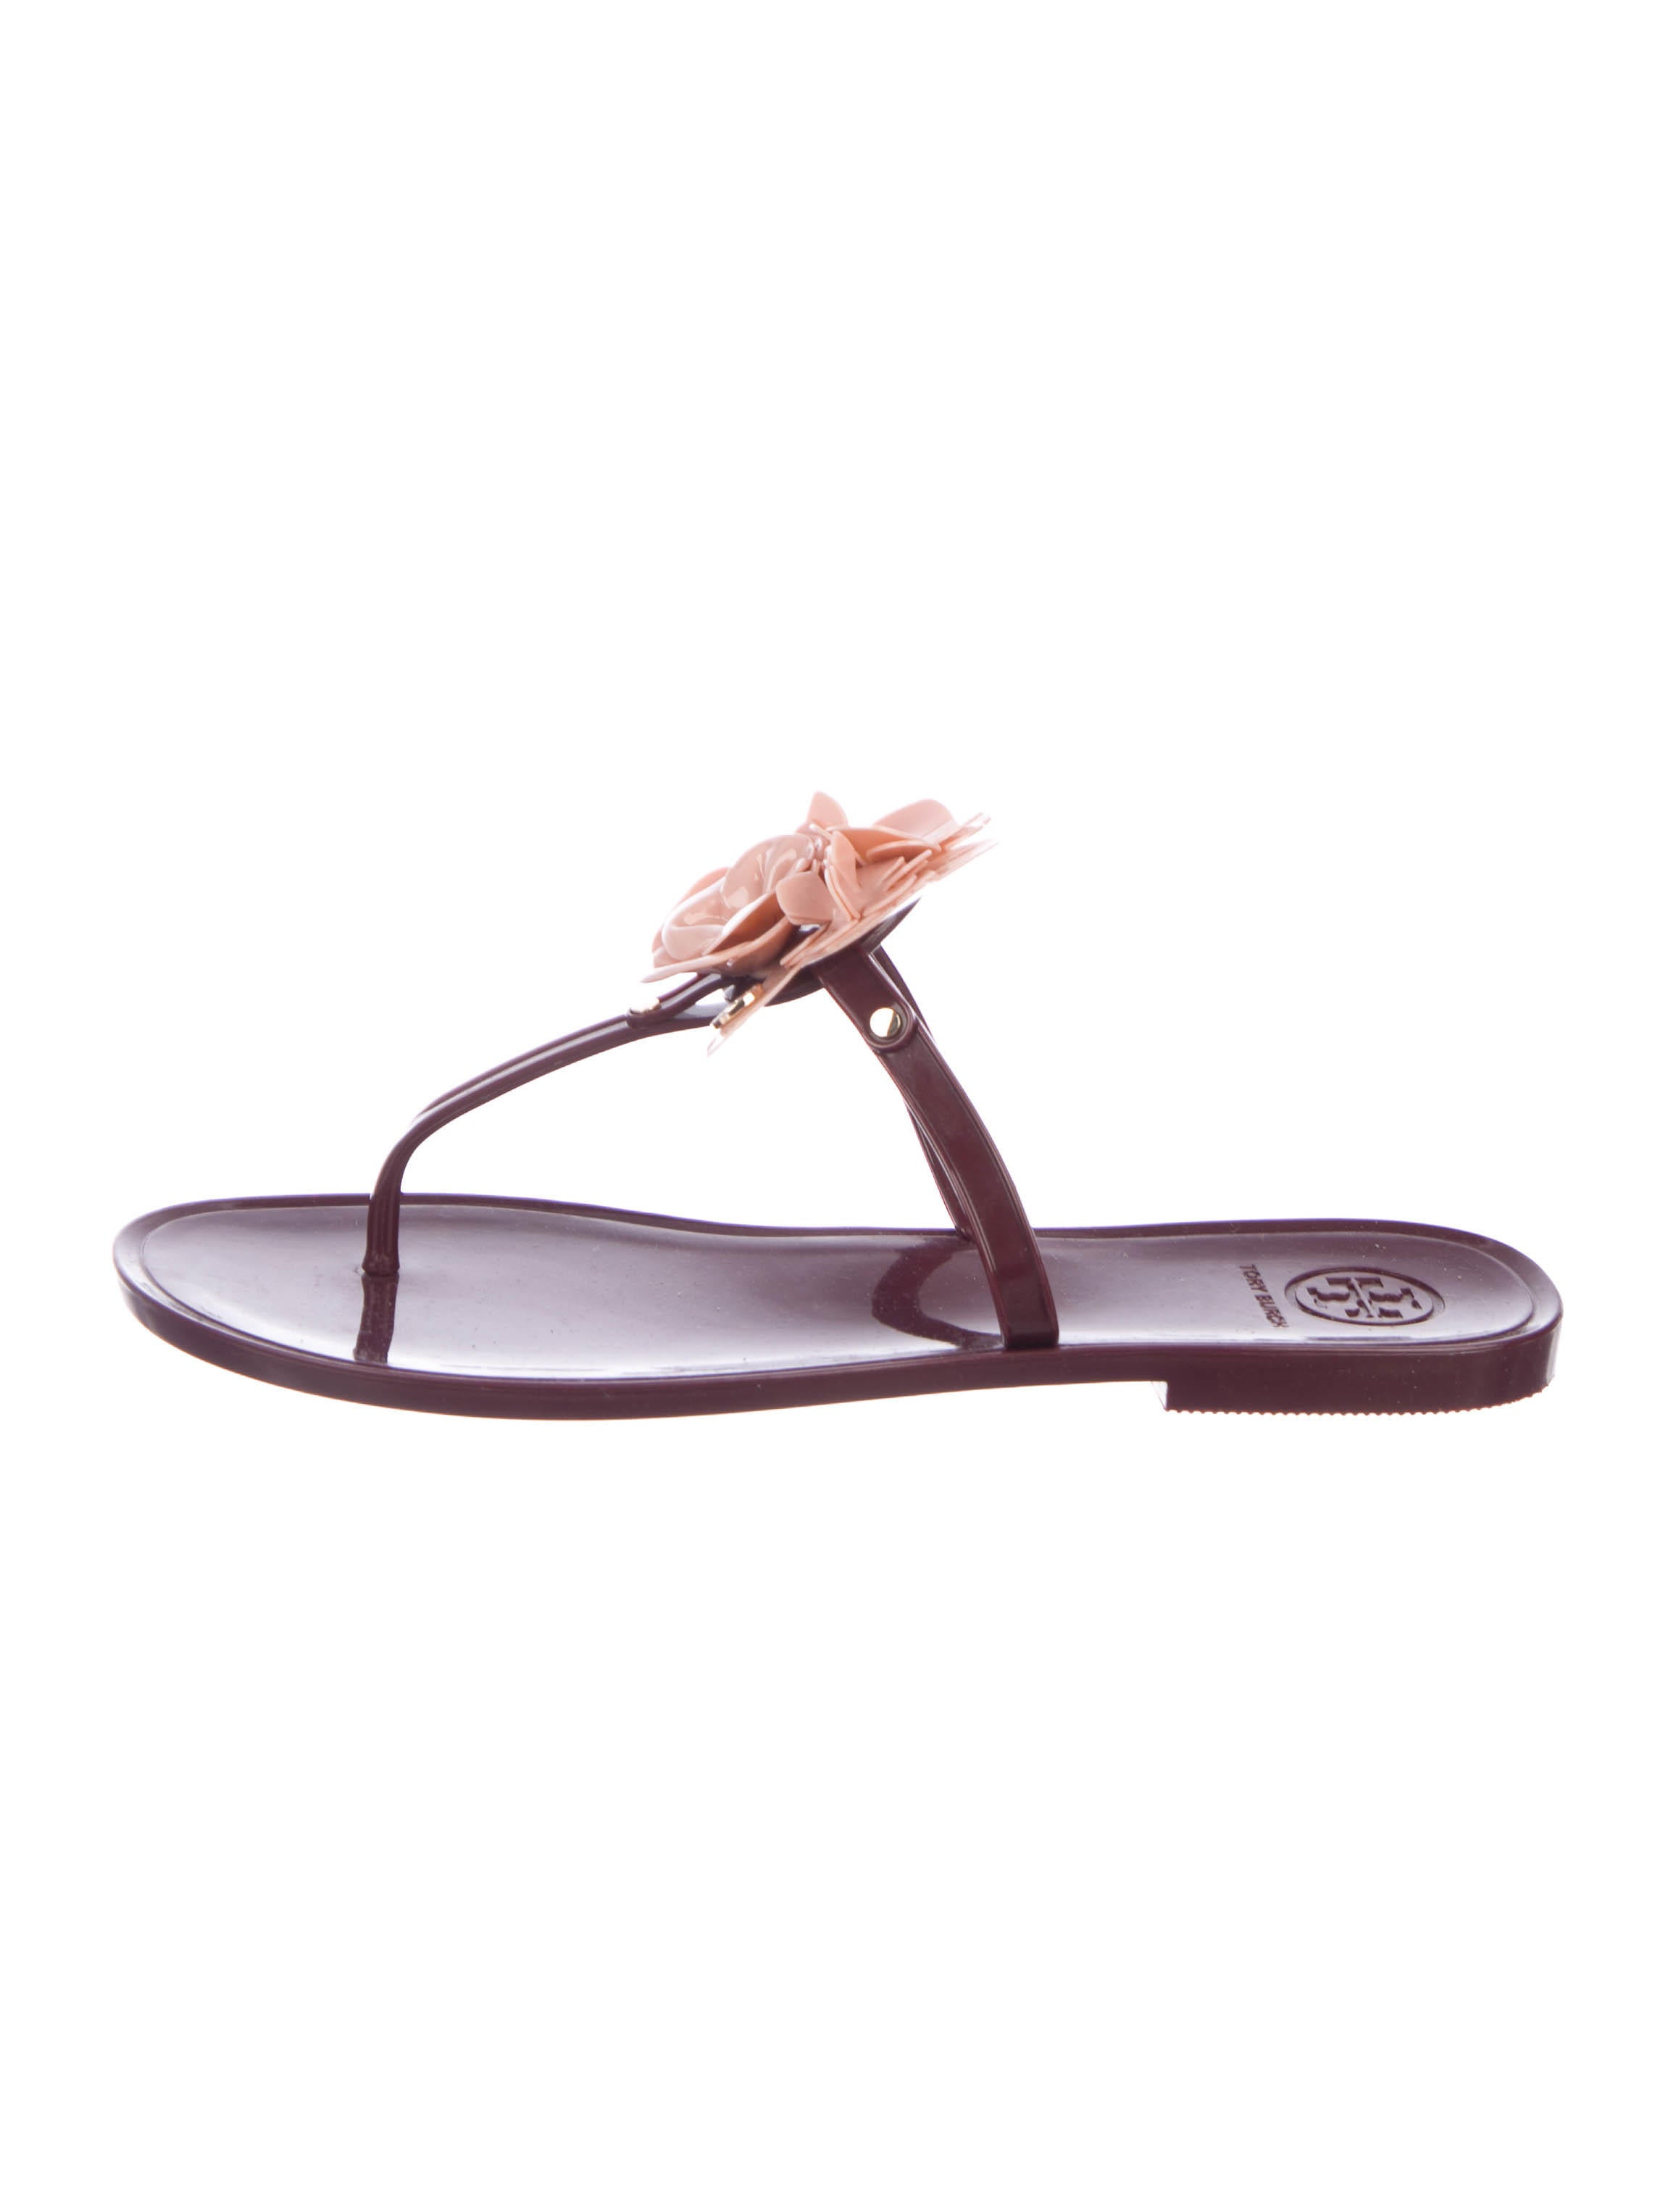 10665e2b7 Tory Burch Blossom Jelly Thong Sandals - Shoes - WTO164338